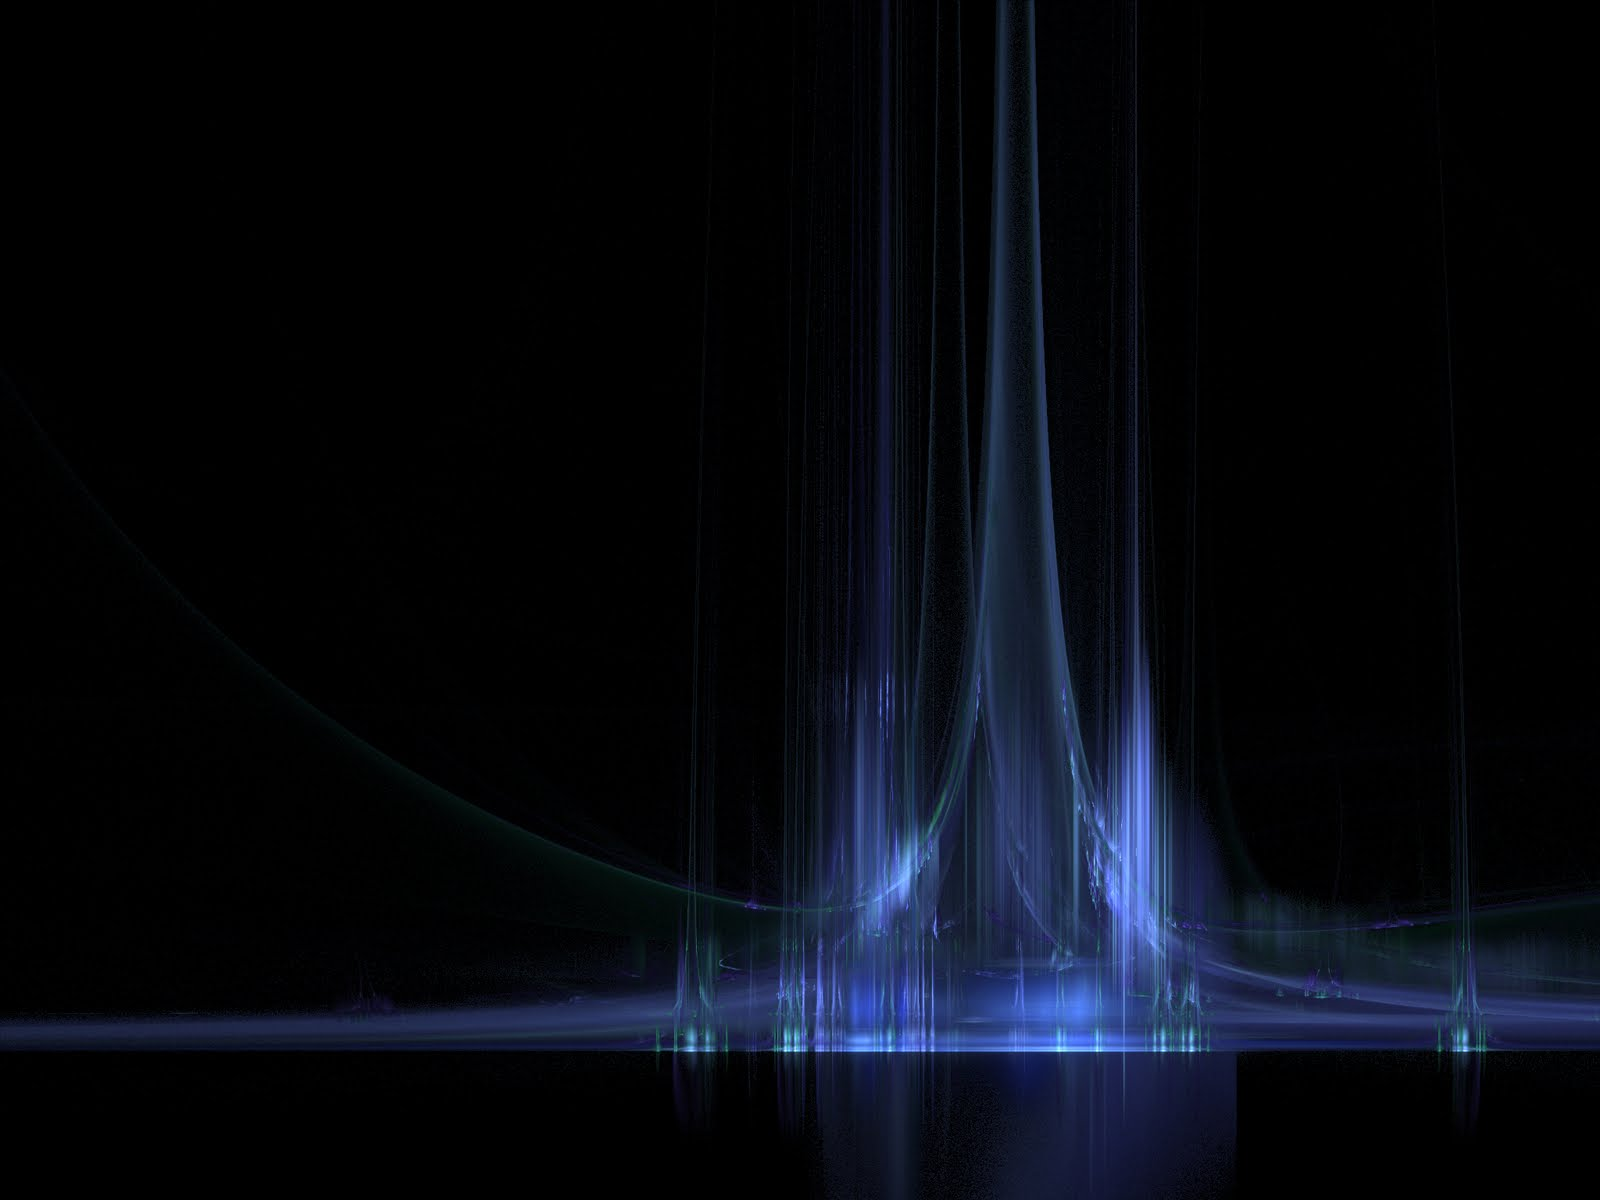 Black Blue Abstract Wallpaper 3632 Hd Wallpapers in Abstract 1600x1200